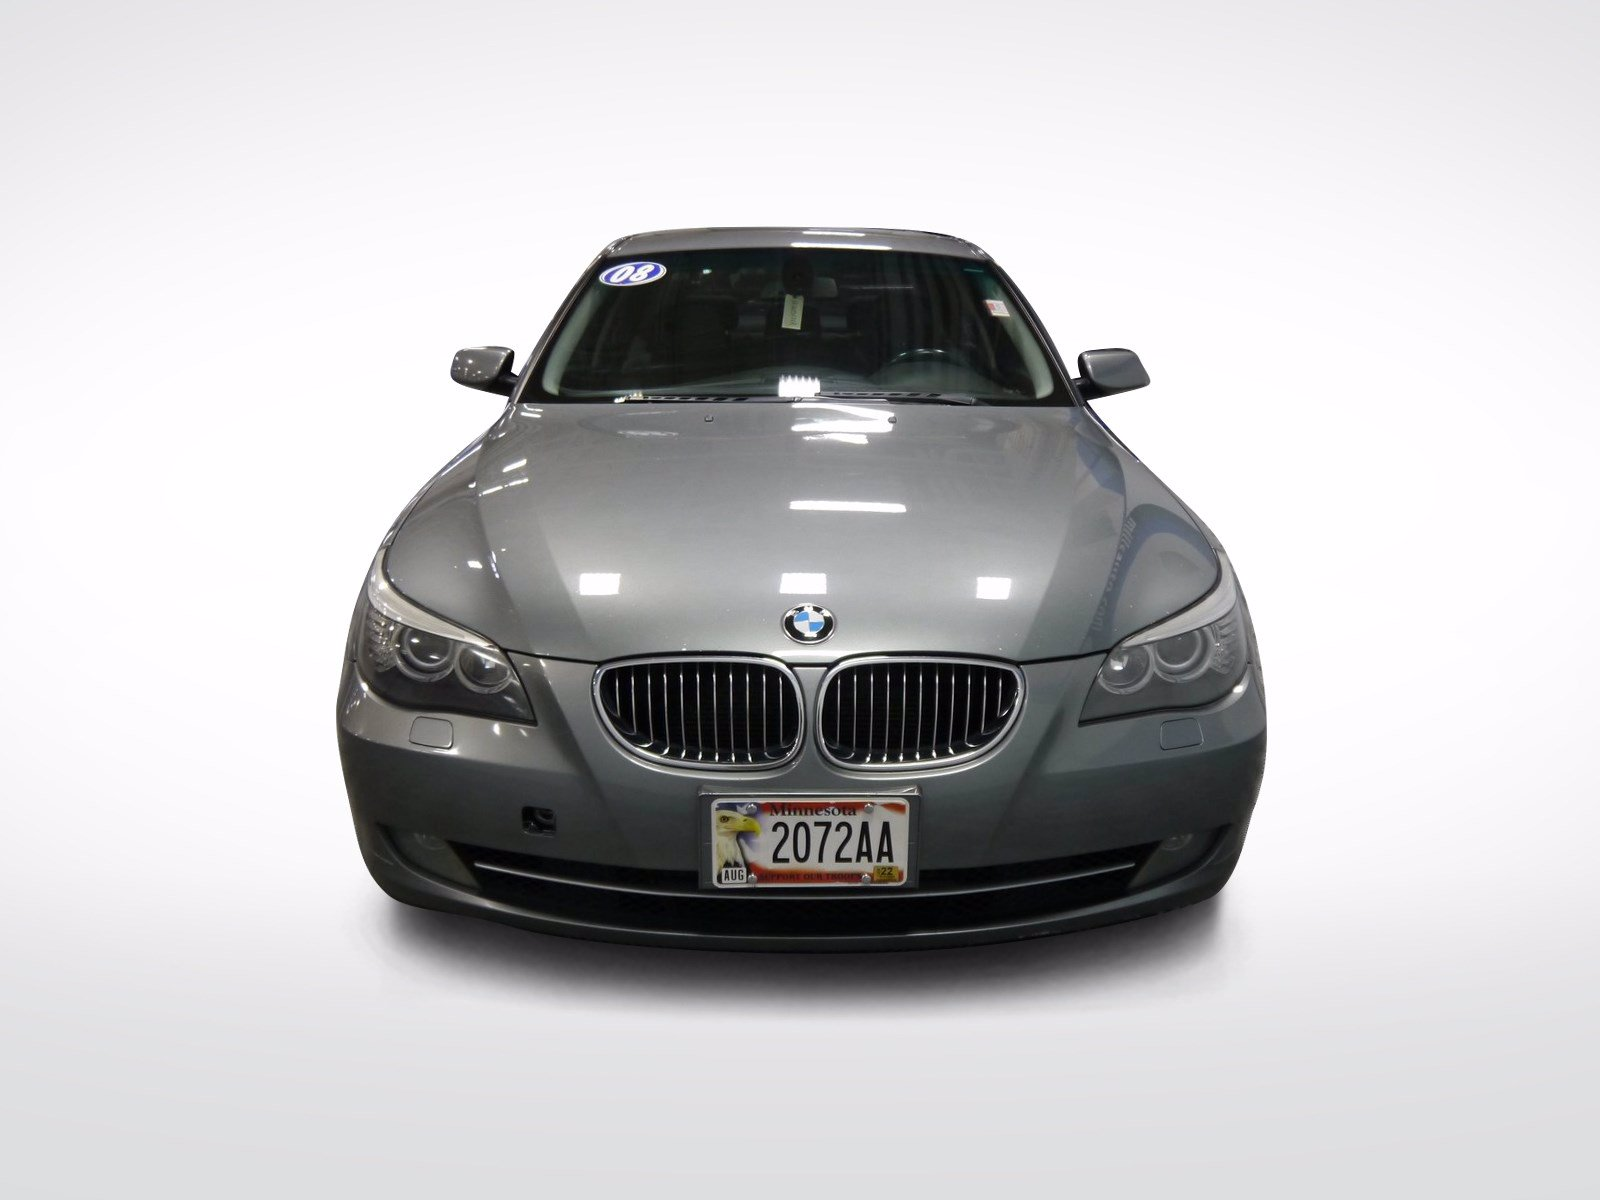 Used 2008 BMW 5 Series 528i with VIN WBANU53508CT15404 for sale in Baxter, Minnesota